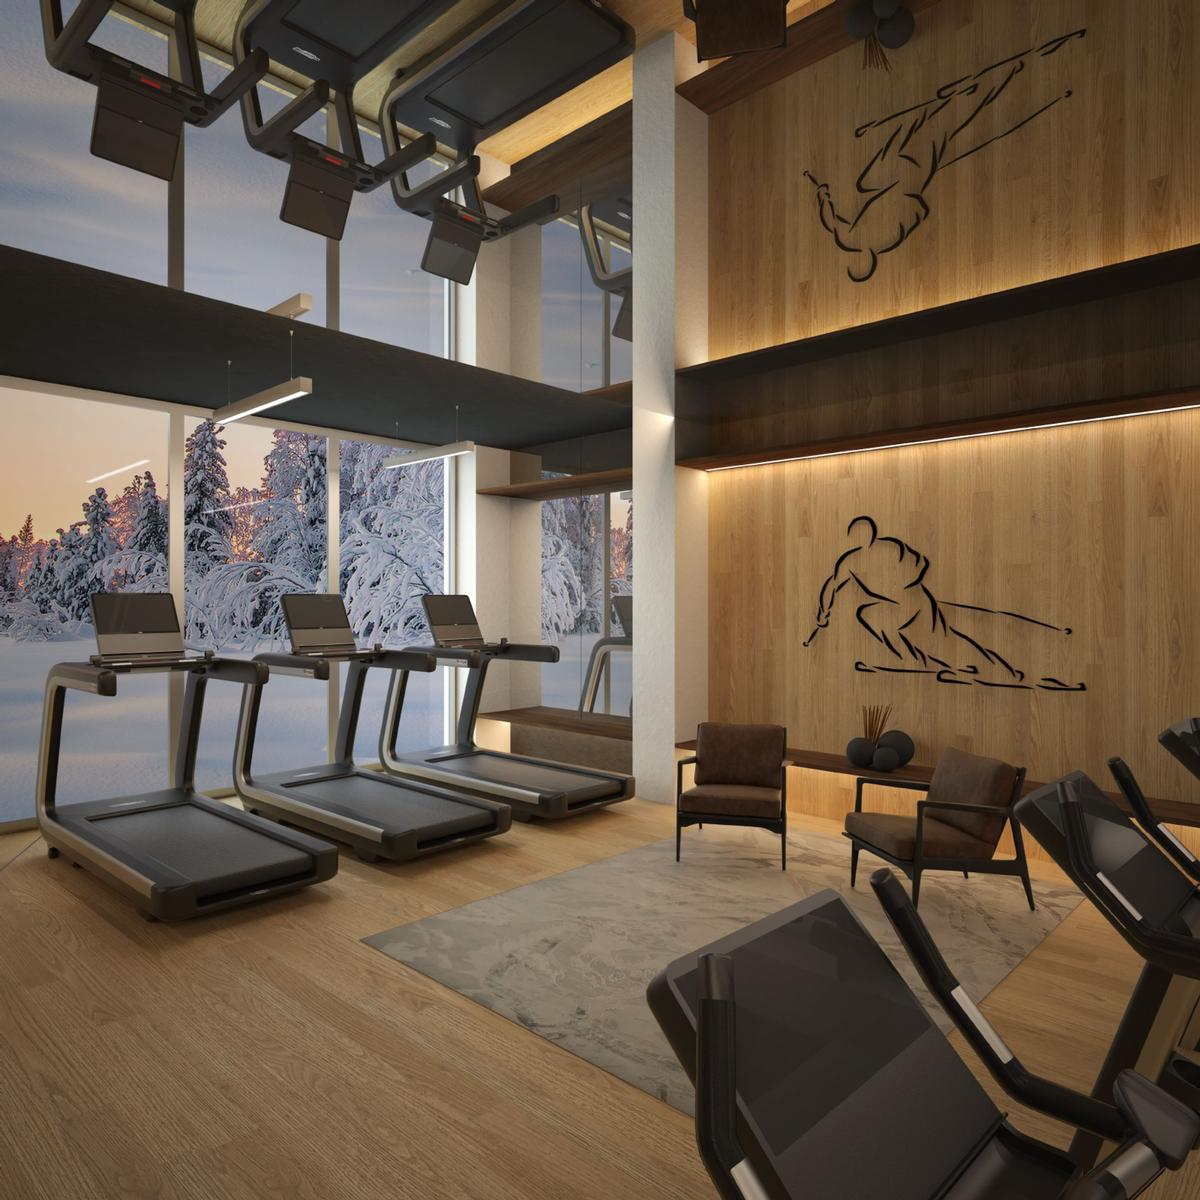 Residents will have access to the resort's many fitness and spa amenities. / Courtesy of Lefay Resorts